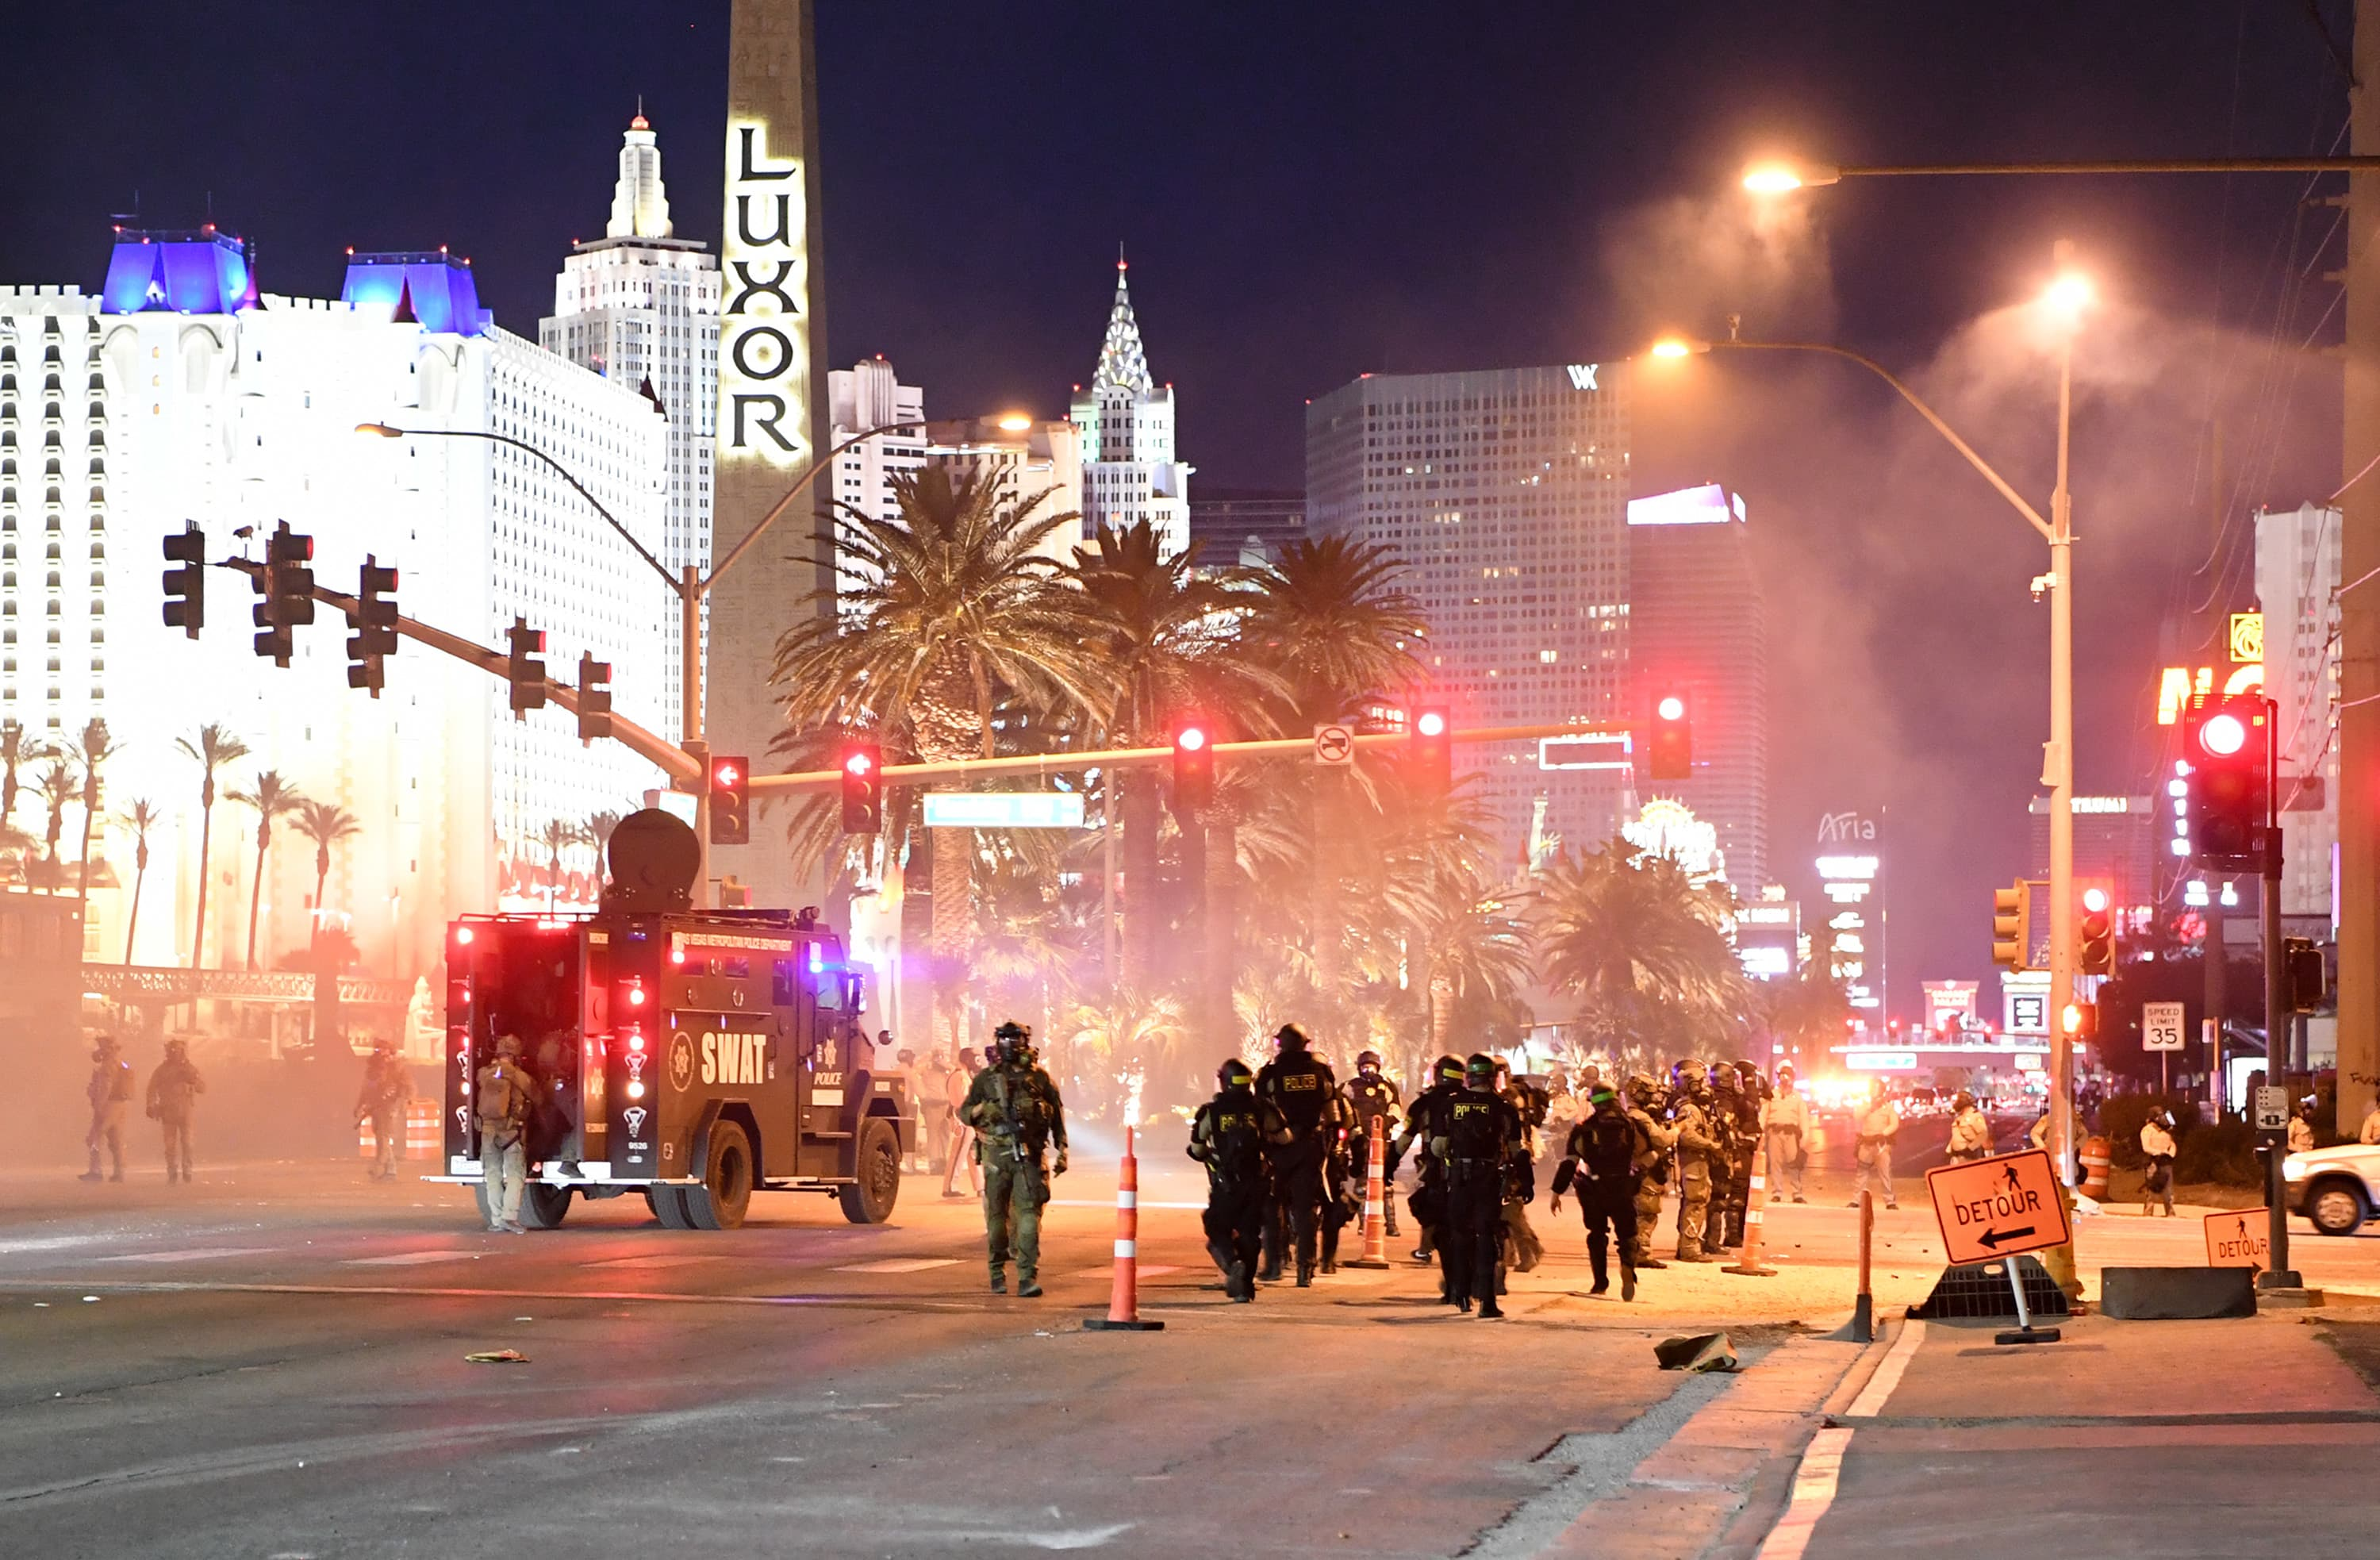 Protest may derail what was expected with the strong relaunch of Las Vegas casinos